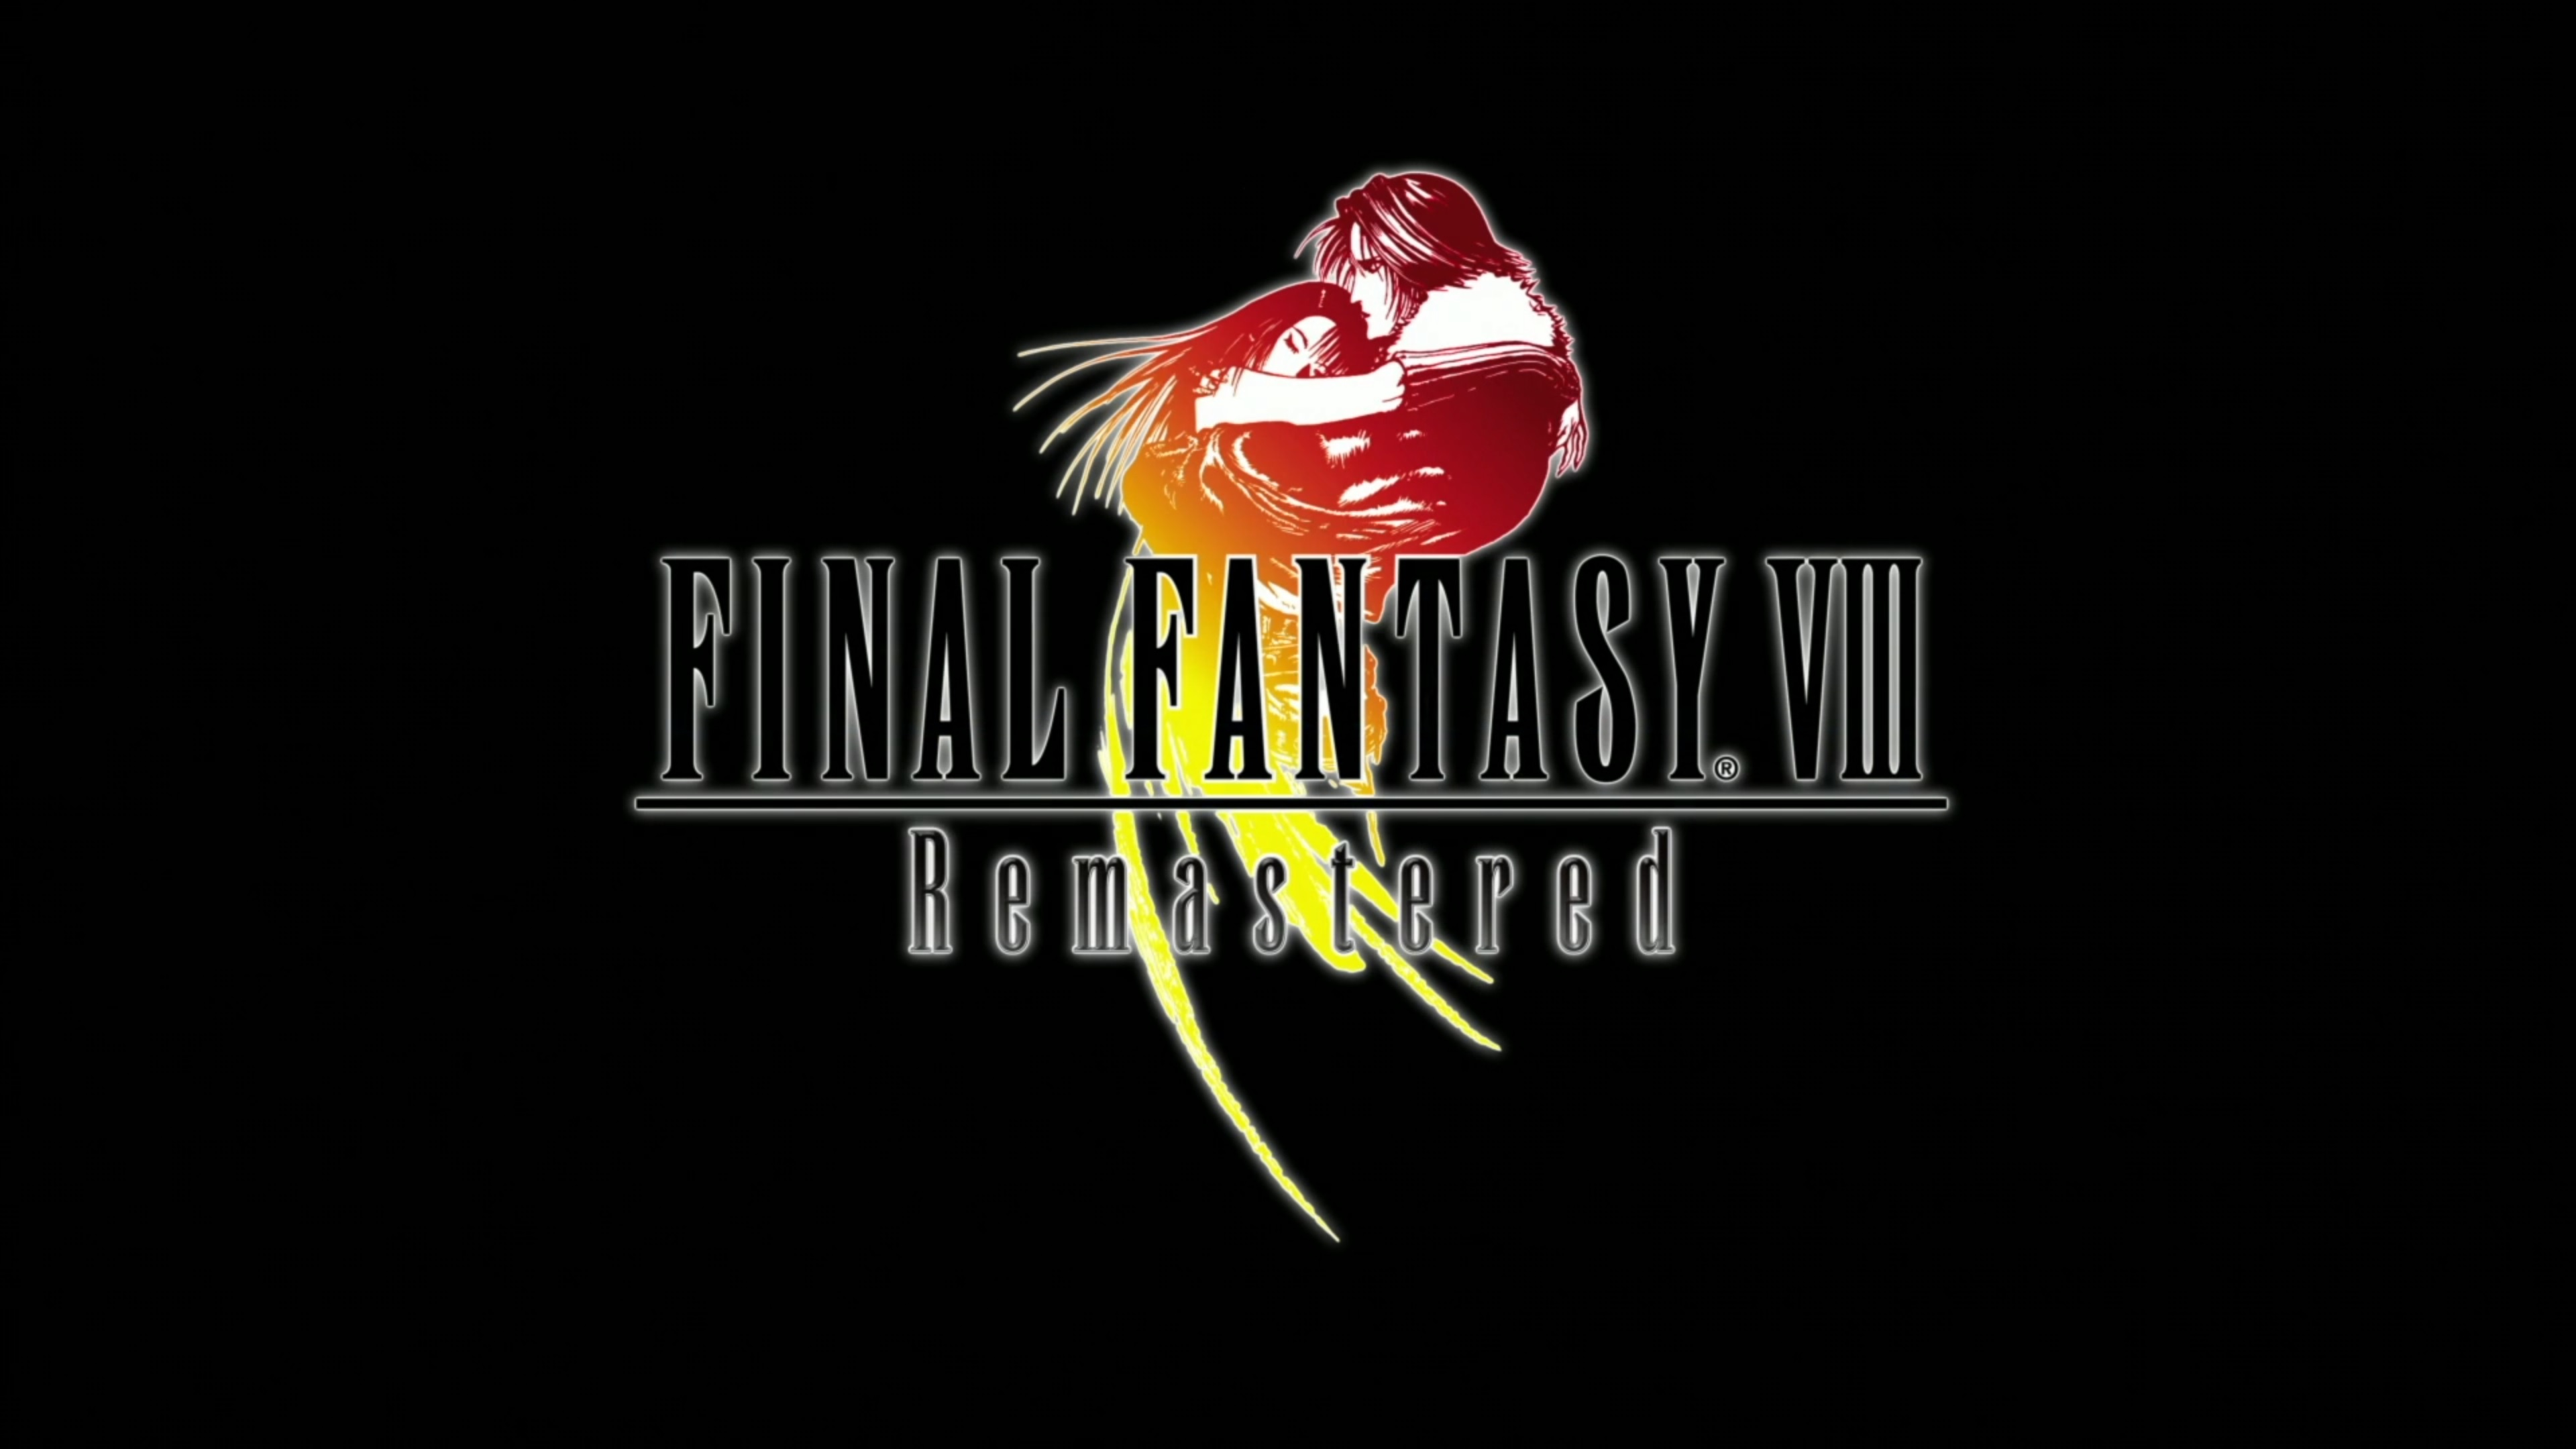 Final Fantasy VIII Remastered new features detailed.